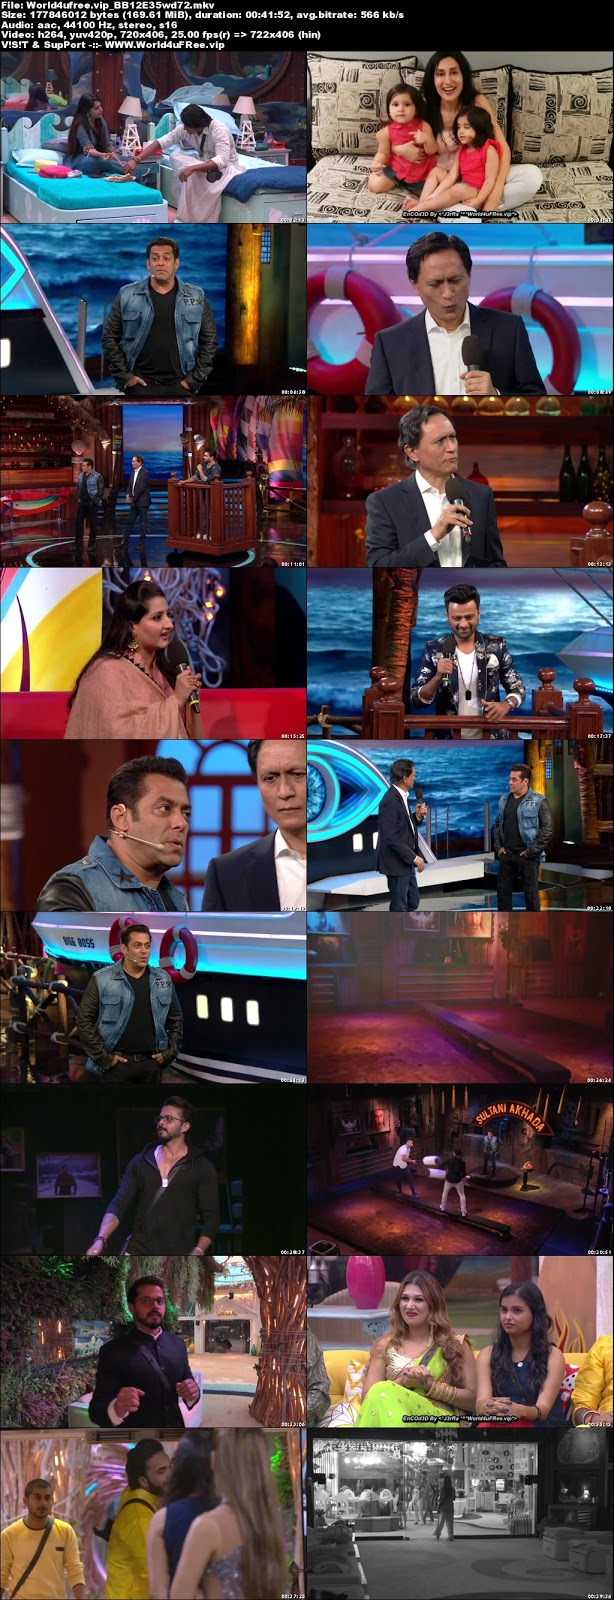 Bigg Boss 12 Episode 35 21 October 2018 720p WEBRip 350mb x264 world4ufree.fun tv show Episode 35 21 October 2018 world4ufree.fun 300mb 250mb 300mb compressed small size free download or watch online at world4ufree.fun